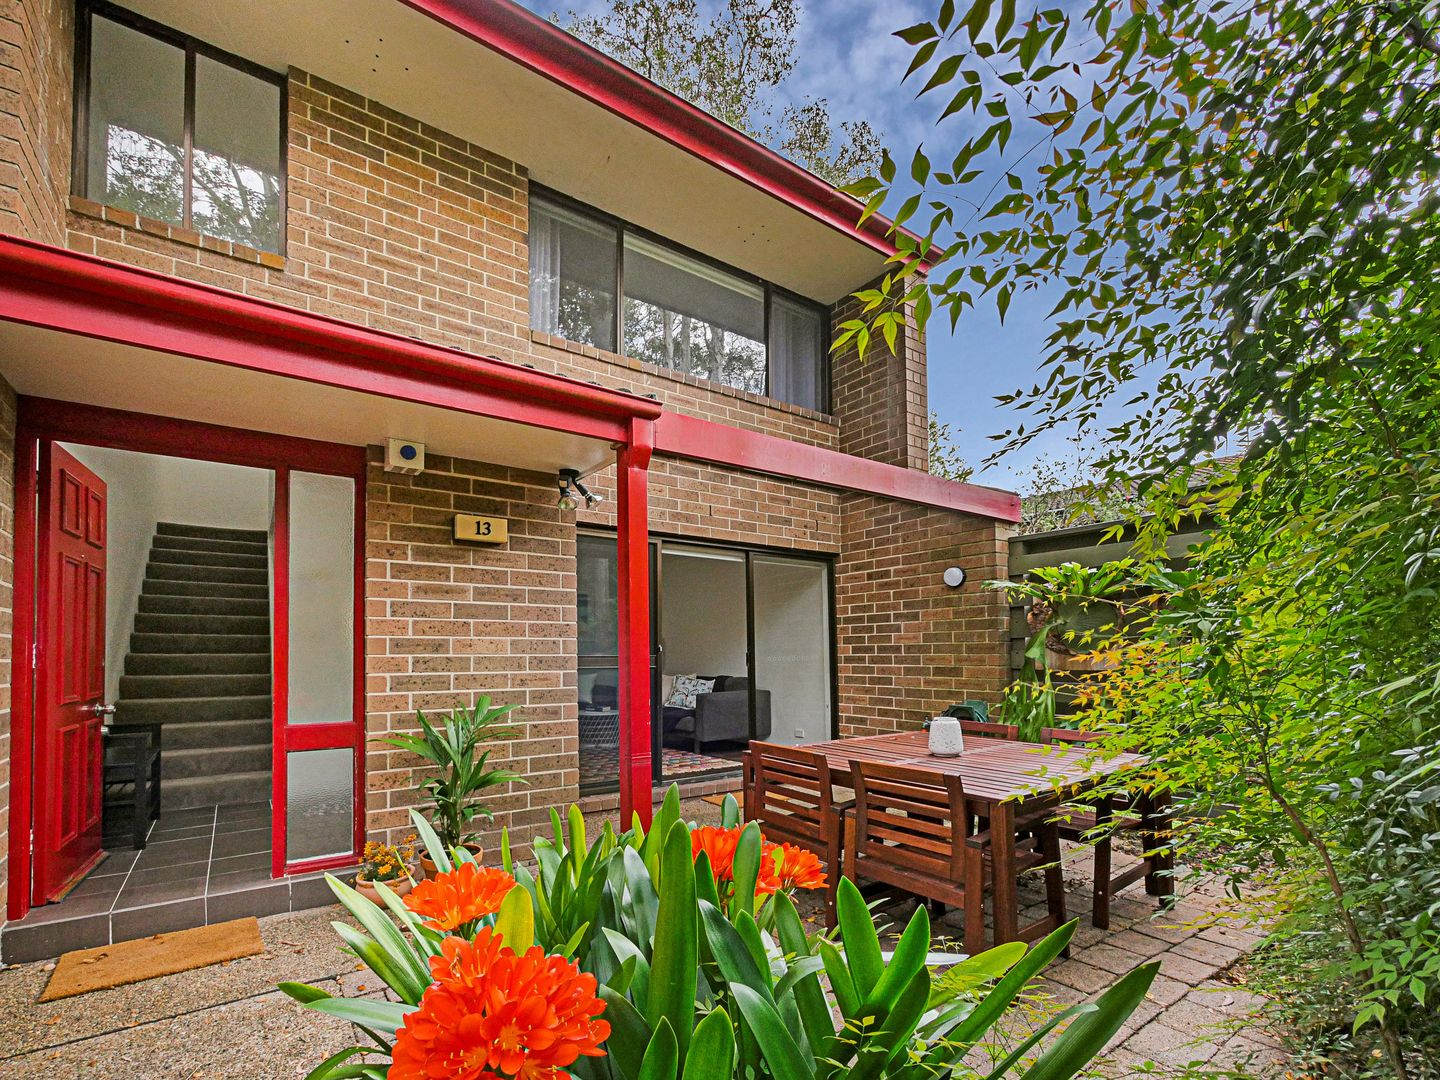 13/8 Tuckwell Place, Macquarie Park NSW 2113, Image 0